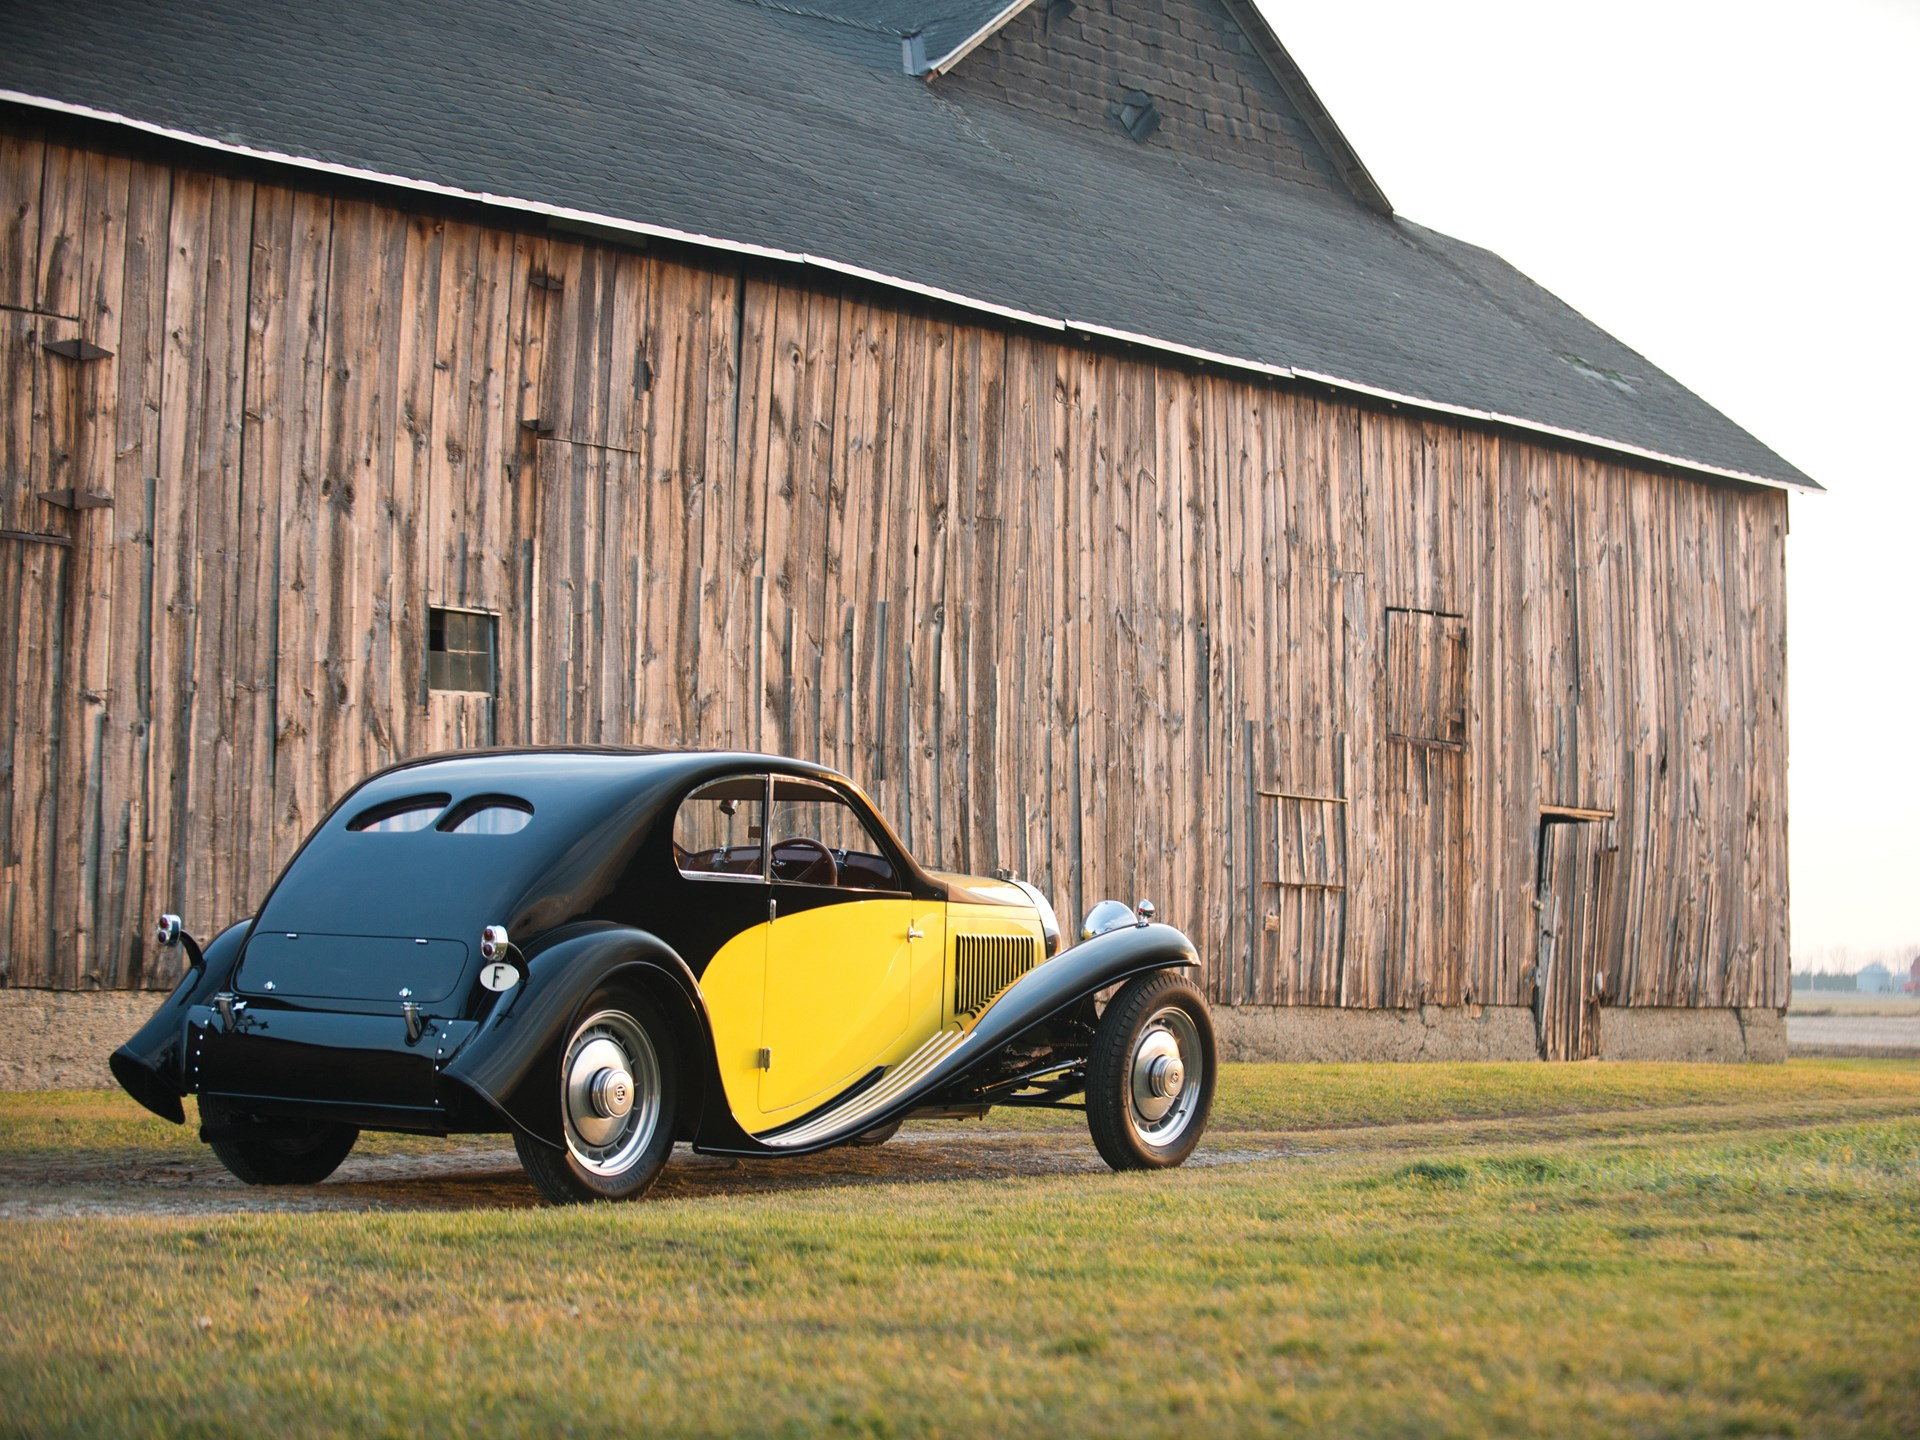 RM Sotheby's - 1930 Bugatti Type 46 Coupé Superprofilée in the style on bugatti limousine, bugatti fast and furious 7, bugatti superveyron, ettore bugatti, bugatti emblem, bugatti 16c galibier concept, bugatti stretch limo, bugatti eb118, bugatti tumblr, bugatti eb110, bugatti phone, bugatti hd, bugatti company, bugatti type 51, bugatti finale, bugatti prototypes, bugatti engine, bentley 3.5 litre, bugatti hennessey venom, bugatti design, roland bugatti, bugatti with girls, bugatti veyron, bugatti mph, bugatti aventador, bugatti royale,